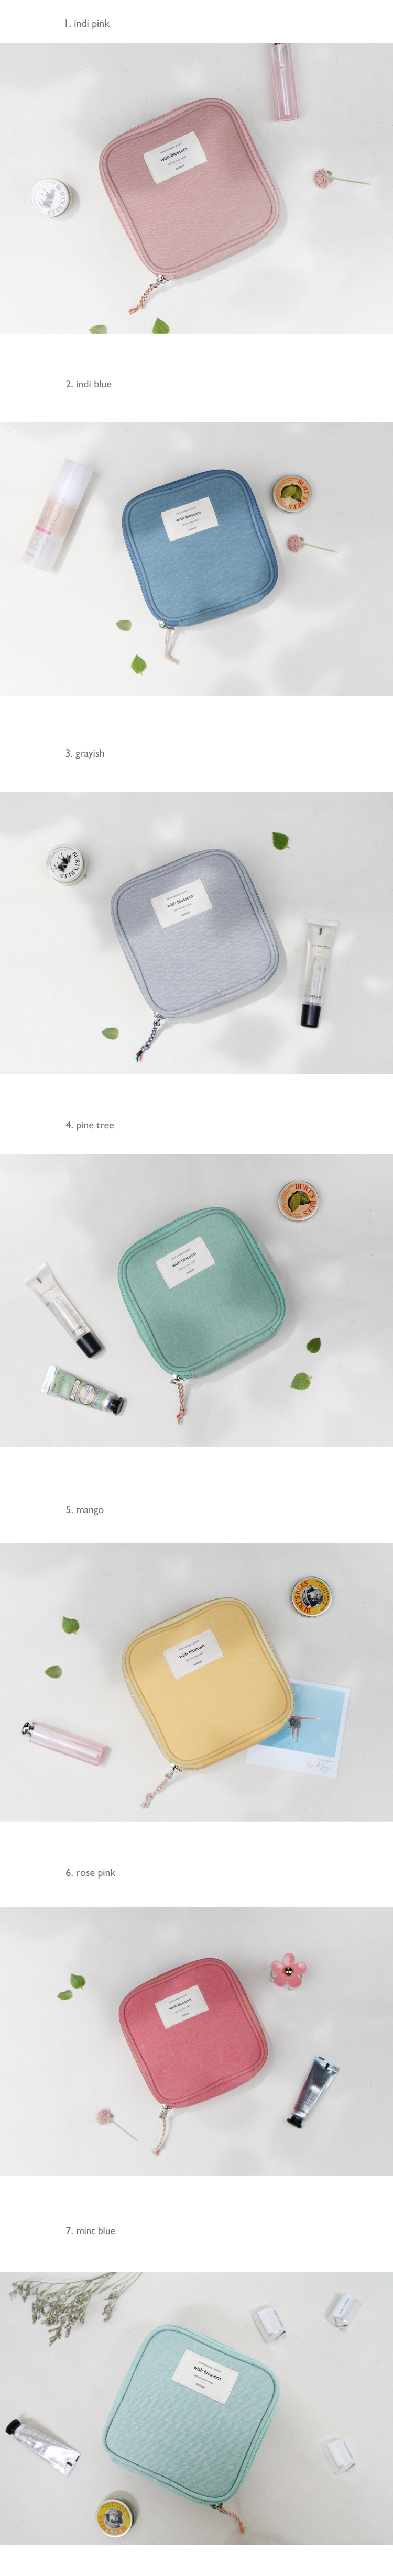 mind compact pouch - 돈북, 15,000원, 화장품파우치, 패브릭